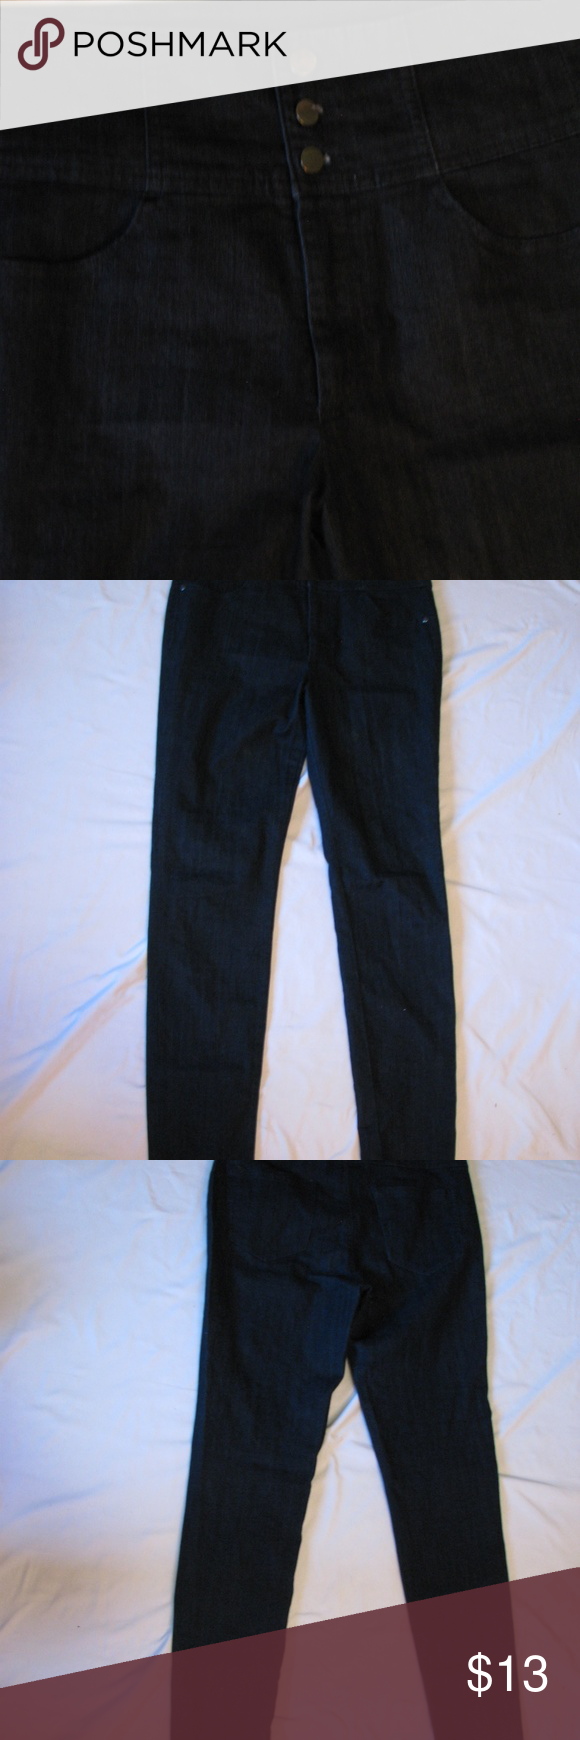 Forever 21 High Waist Skinny Jeans Like New. Excellent condition! Forever 21 Jeans Skinny